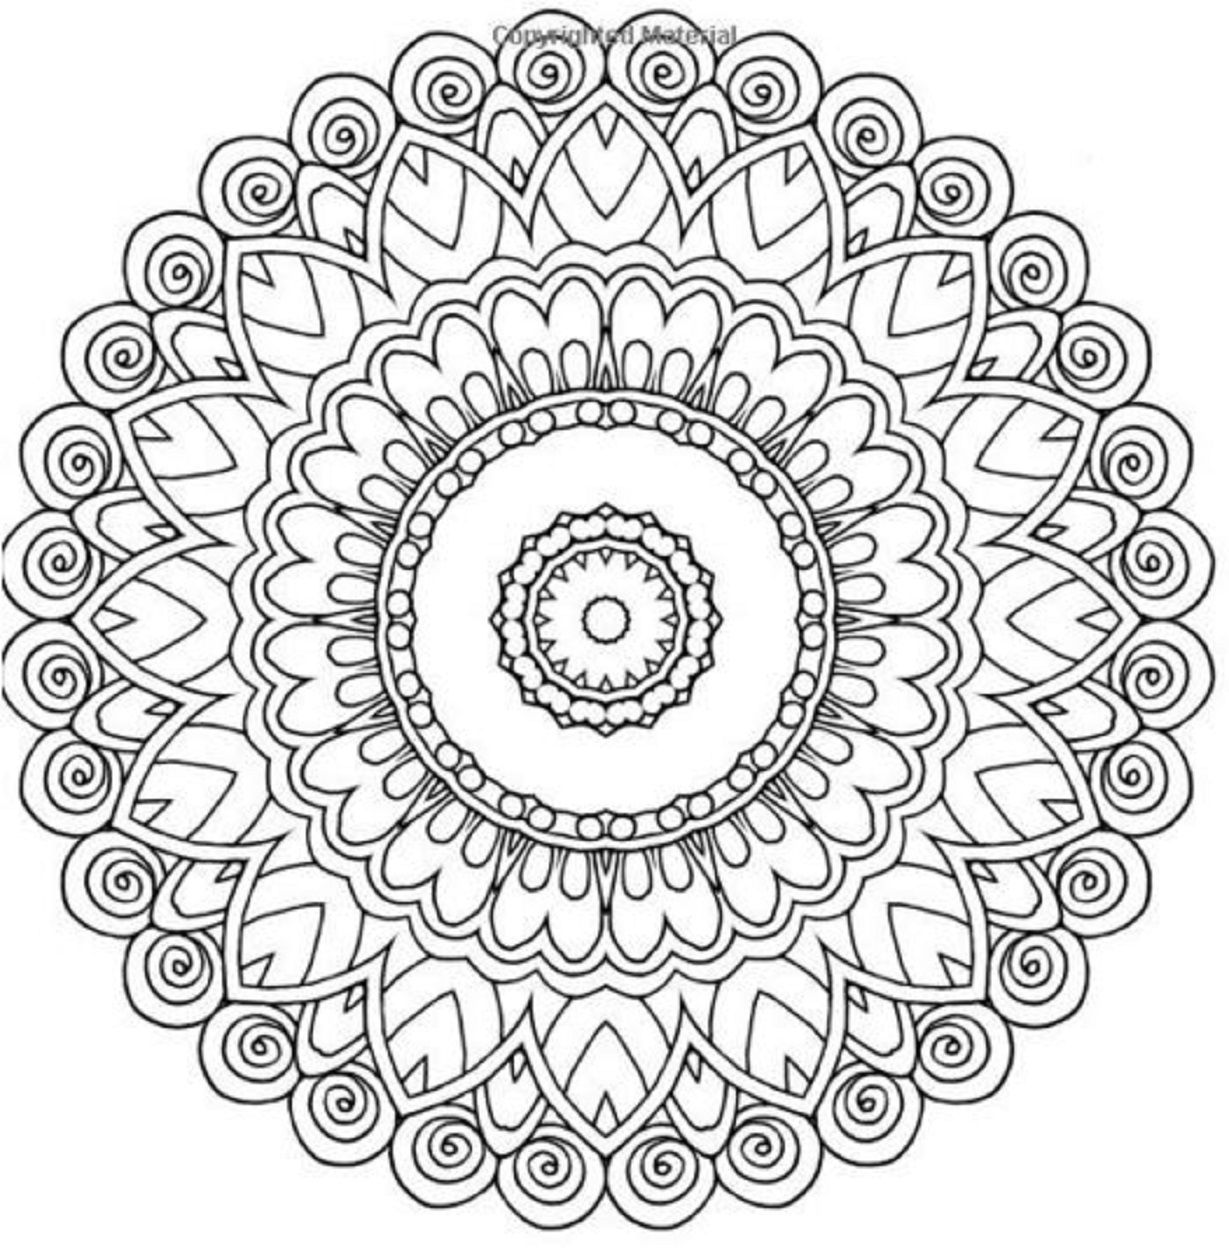 Stress relief coloring pages mandala - Adults Coloring Book Mandala Design Stress Relief Relax